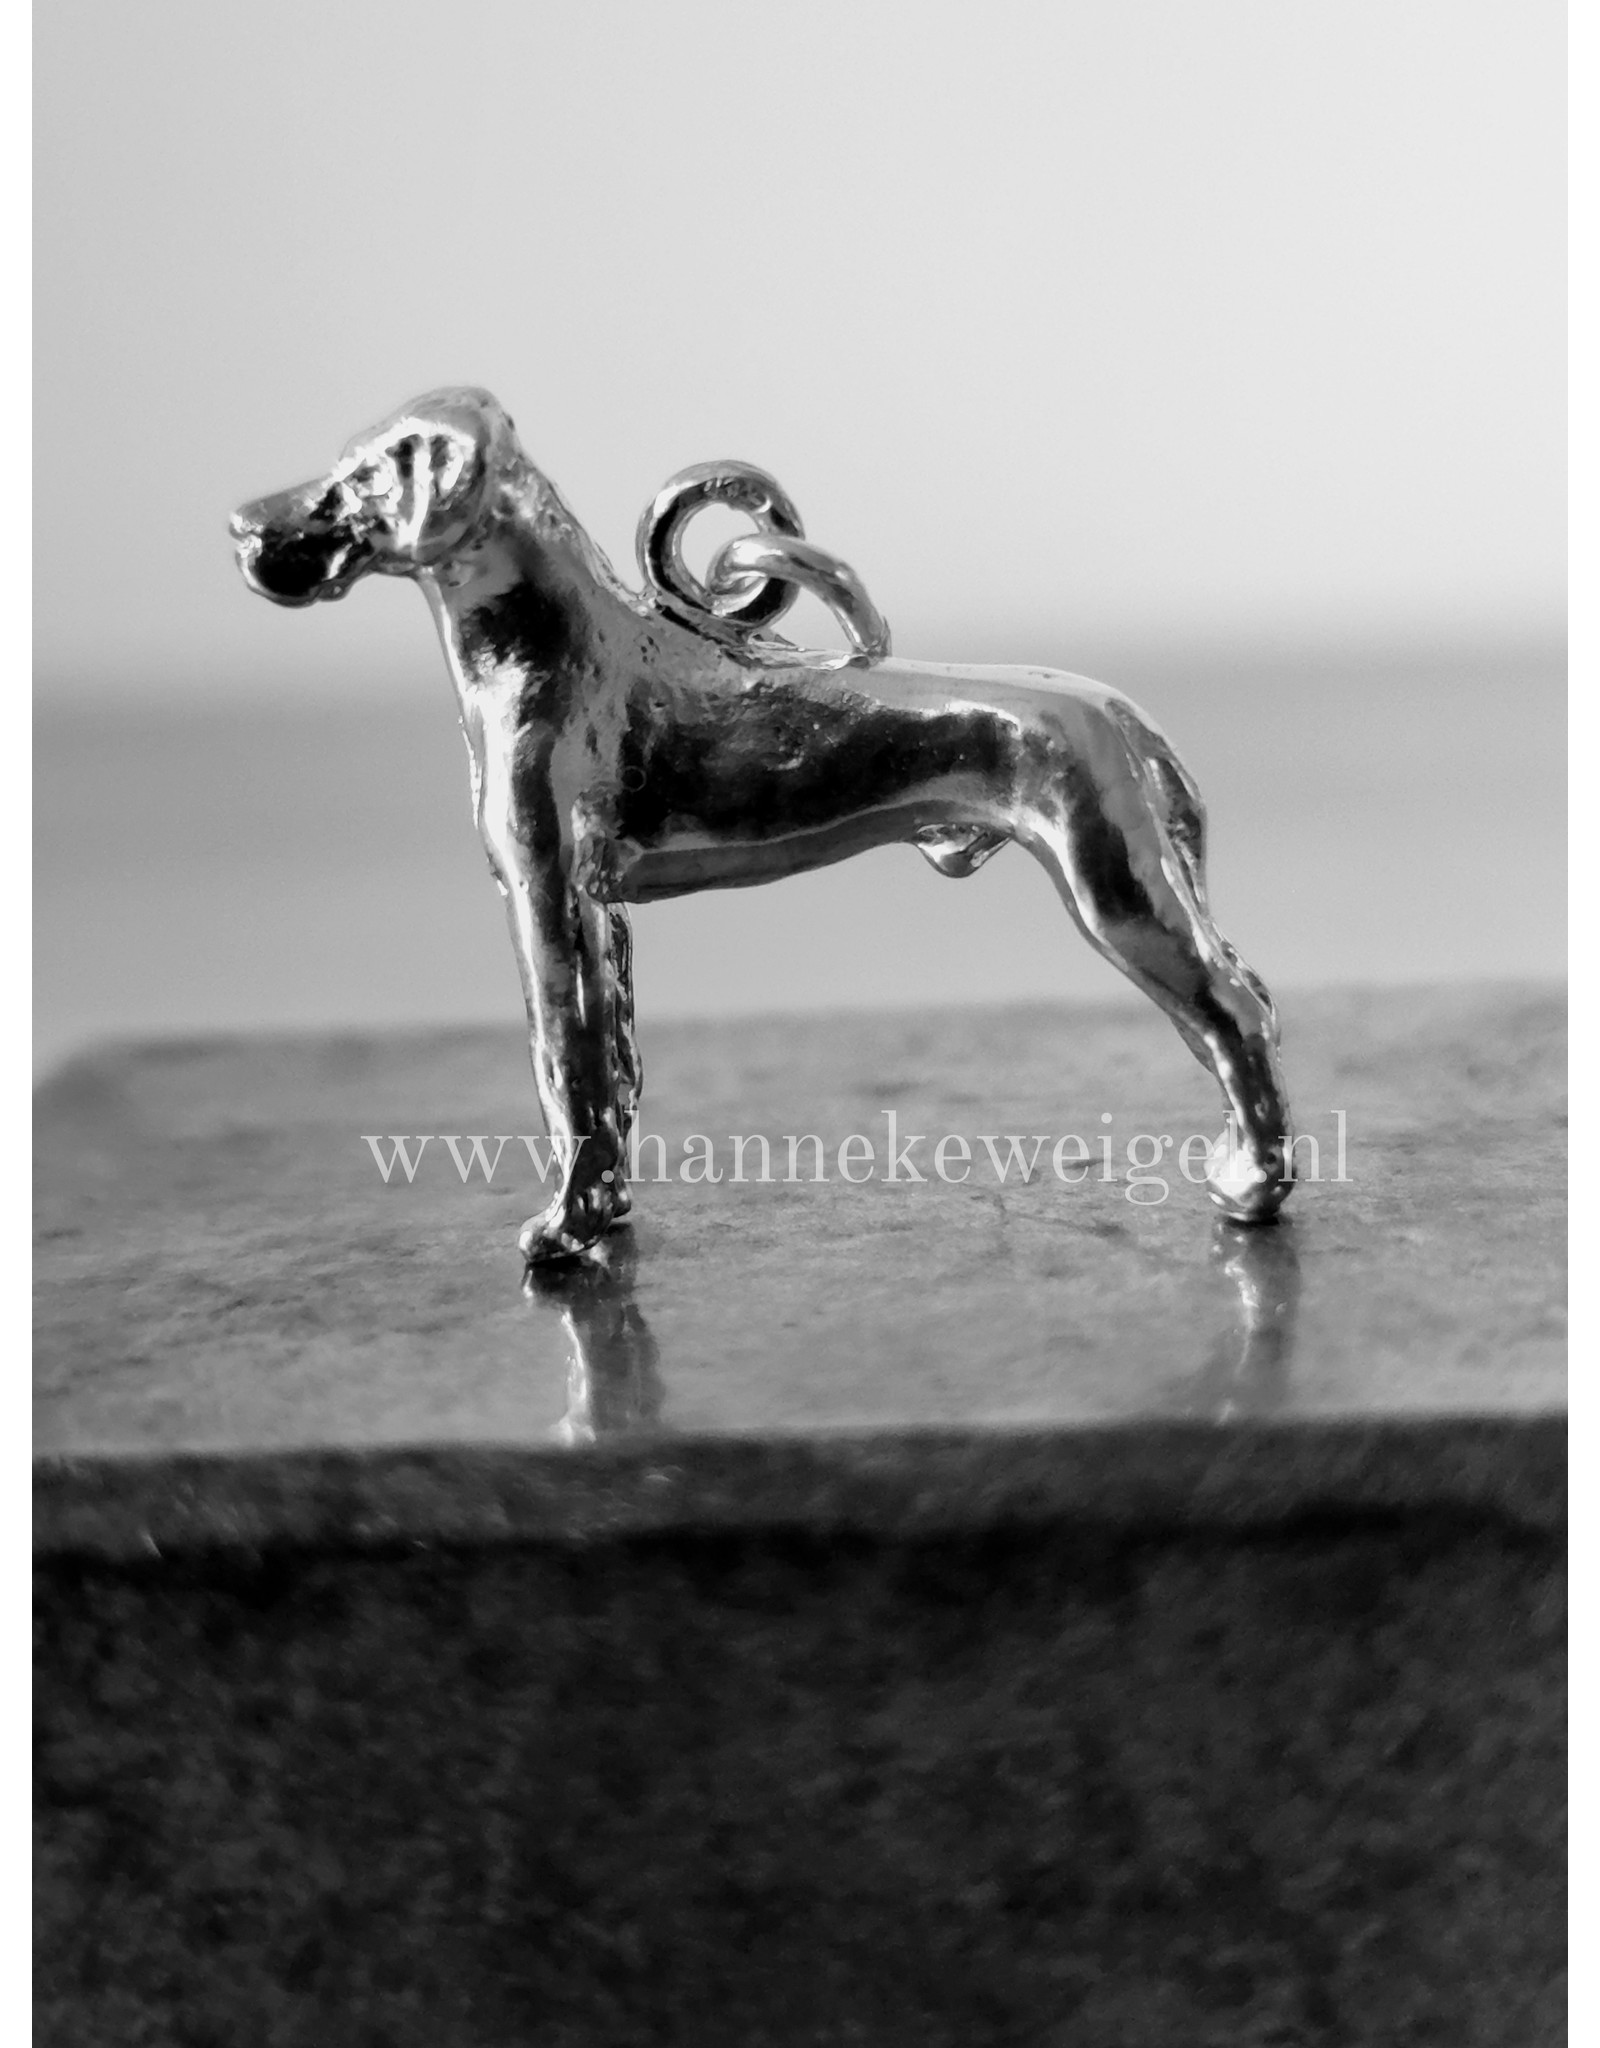 Handmade by Hanneke Weigel Zilveren Duitse dog